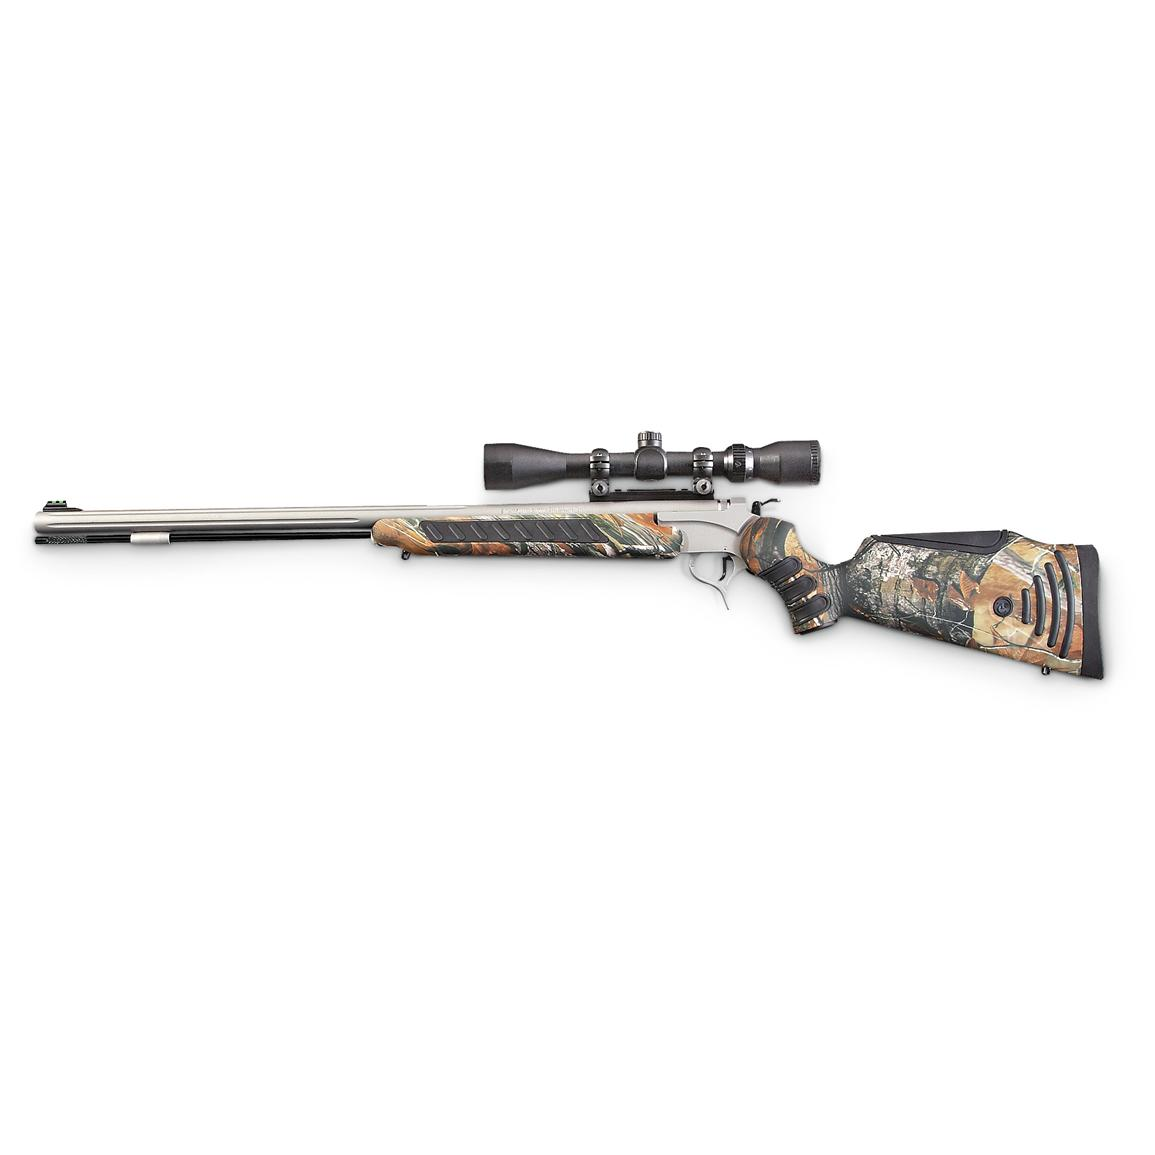 Thompson / Center Pro Hunter FX Muzzleloader with 3-9 x 40mm Scope, Realtree AP Camo / Stainless Steel